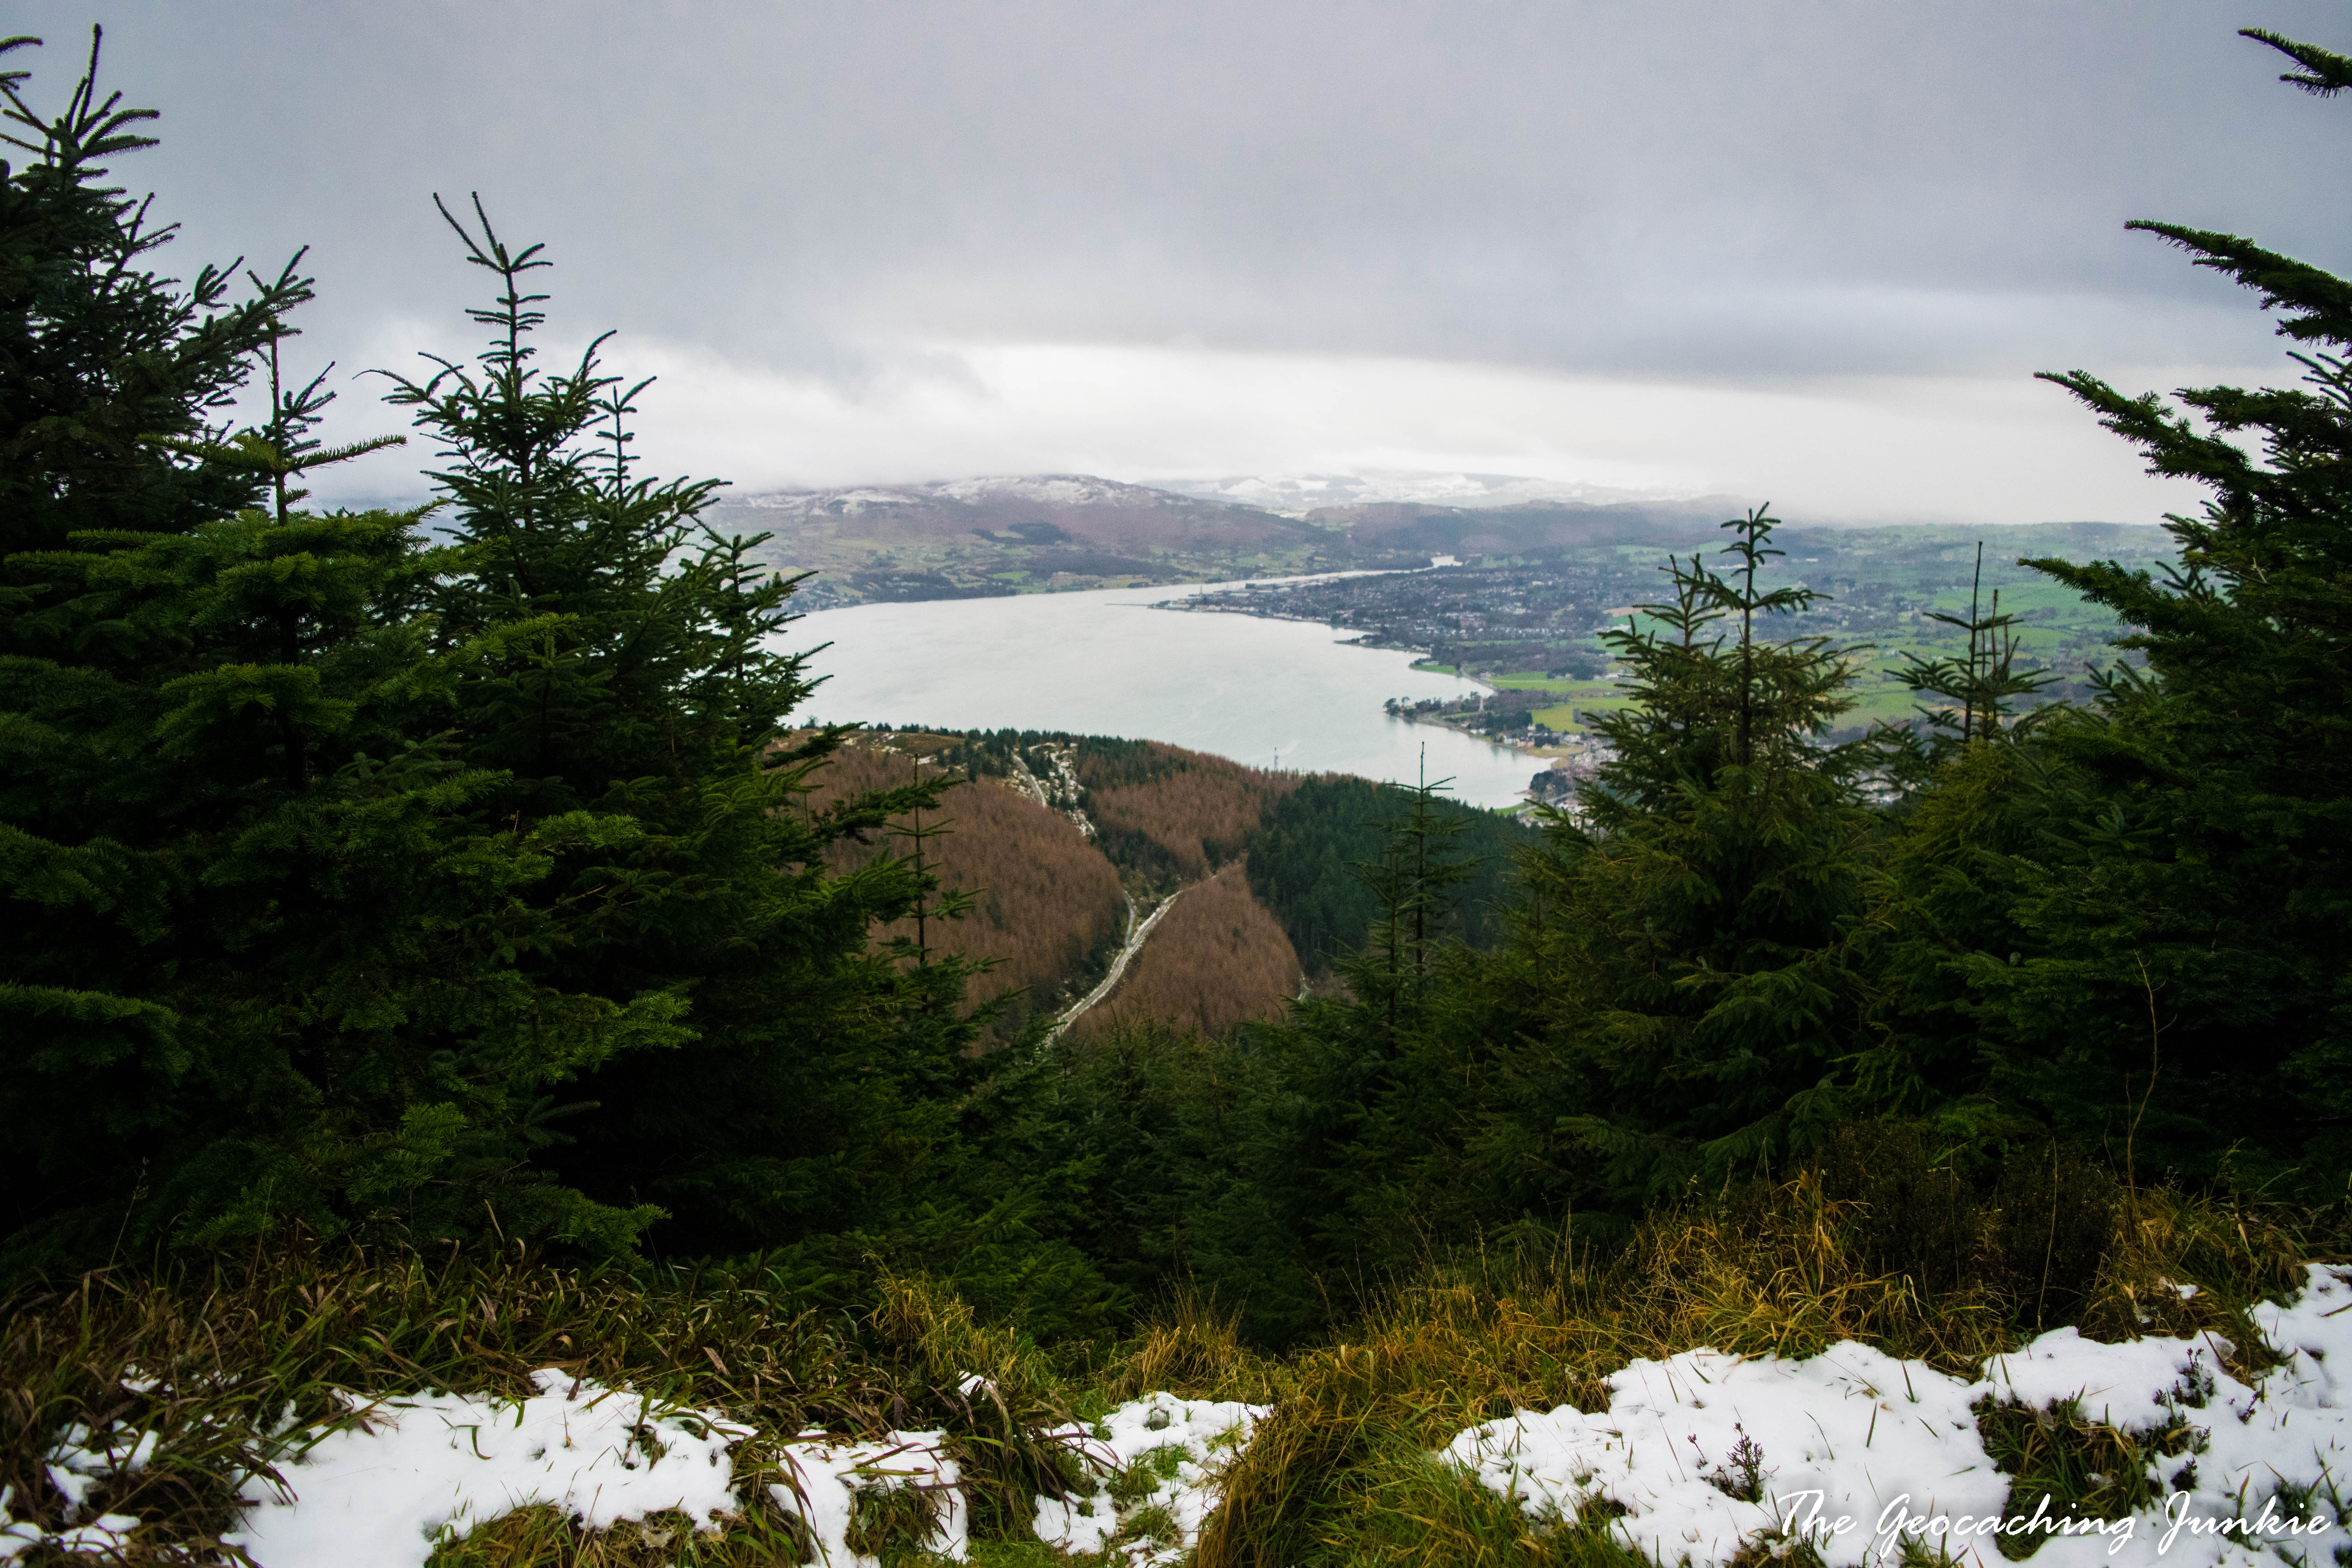 The Geocaching Junkie - Starting out my New Year's Resolutions in January at Kilbroney Forest Park, County Down with a geocaching group